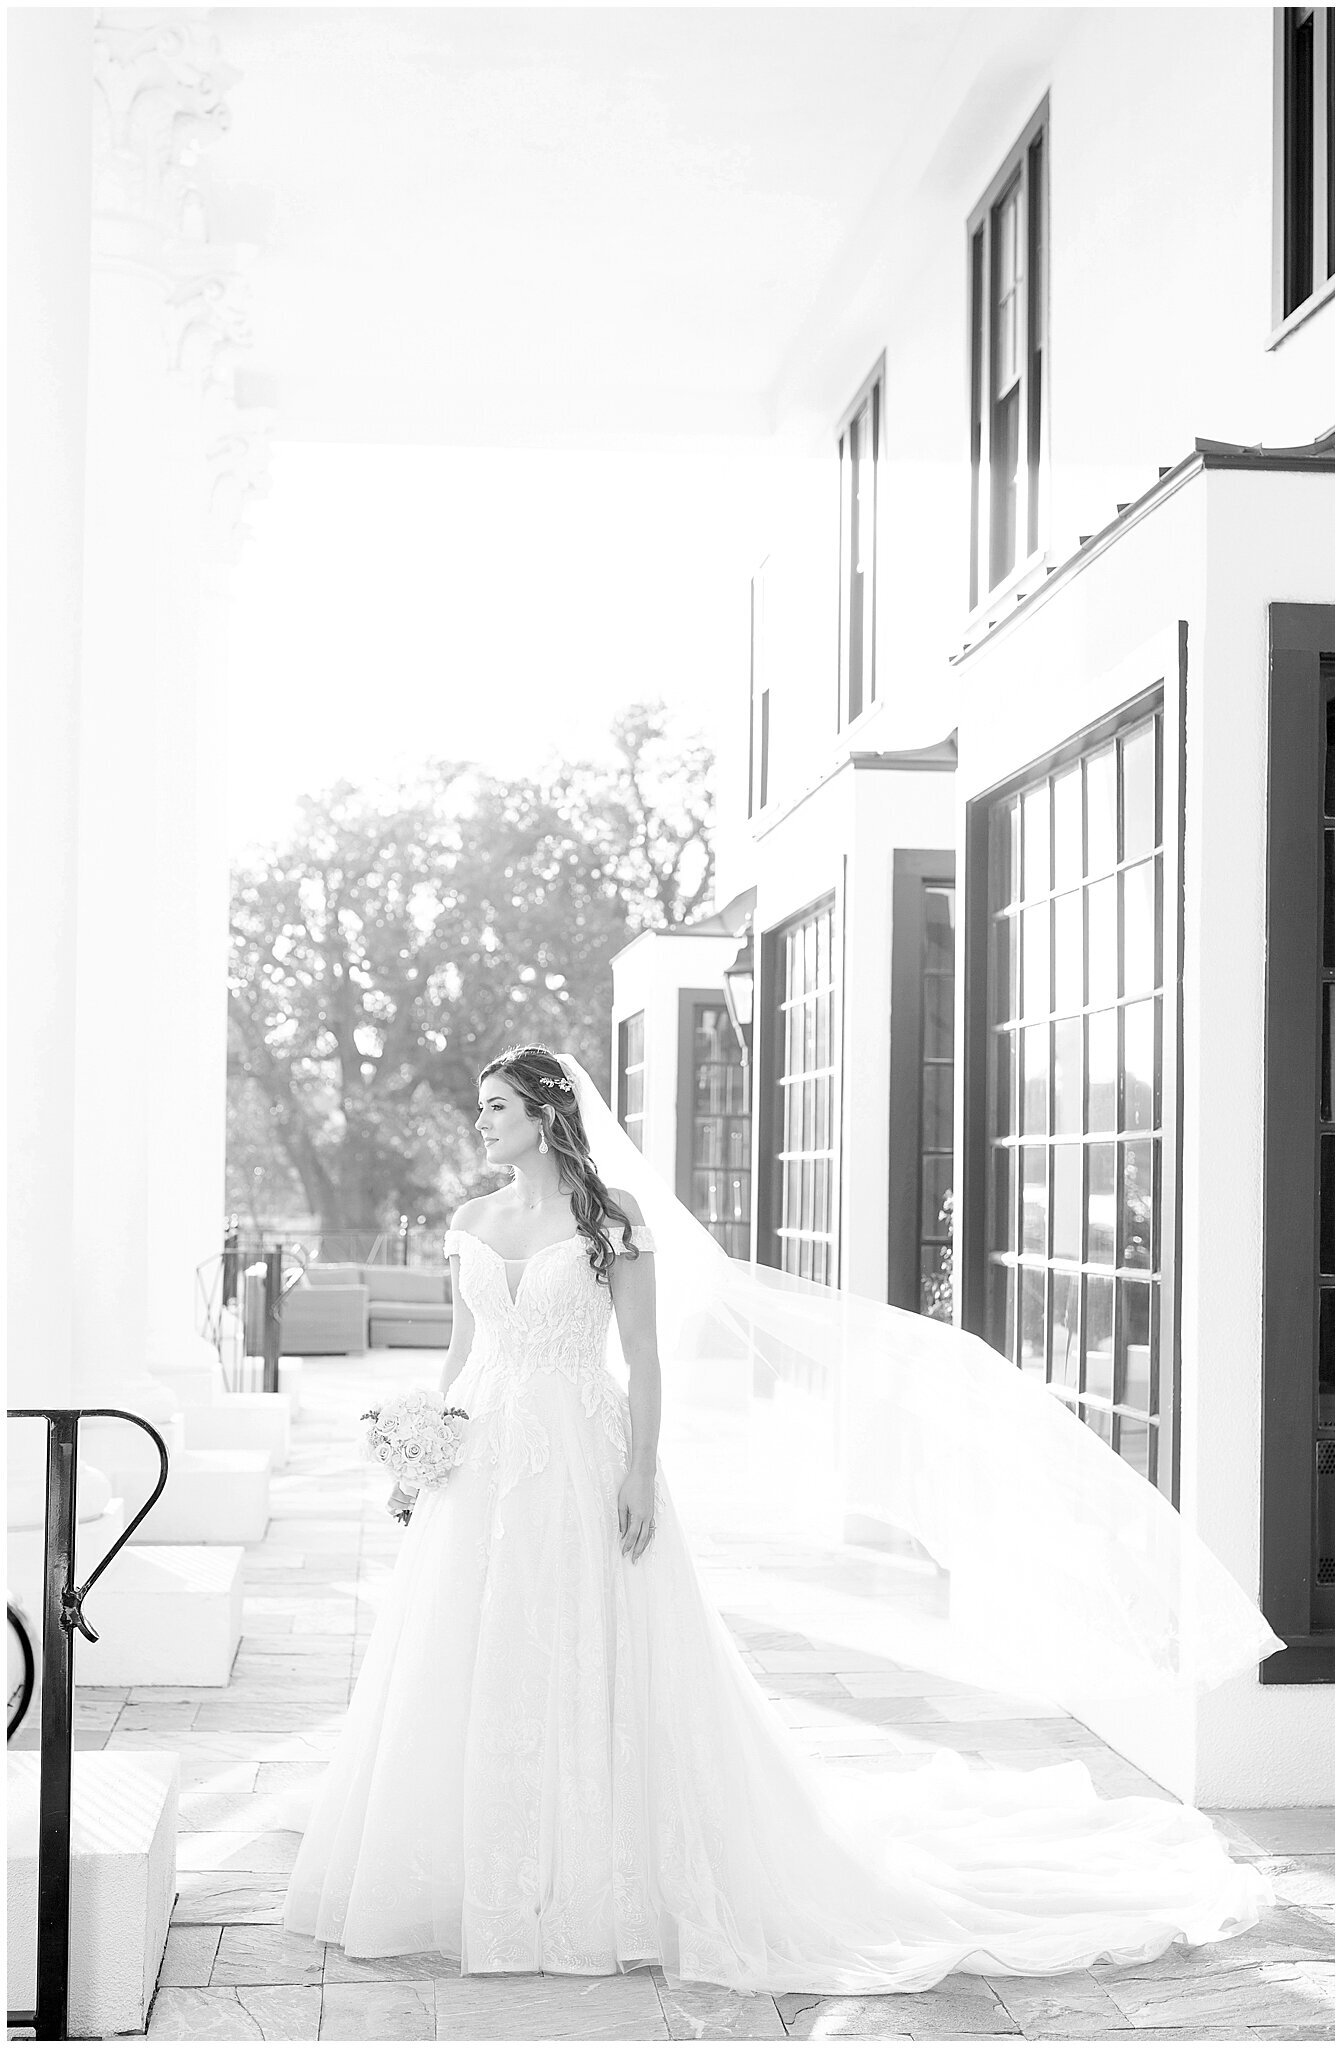 Bridal-Wedding-PortraitsThe-White-House-Hotel-Biloxi1224